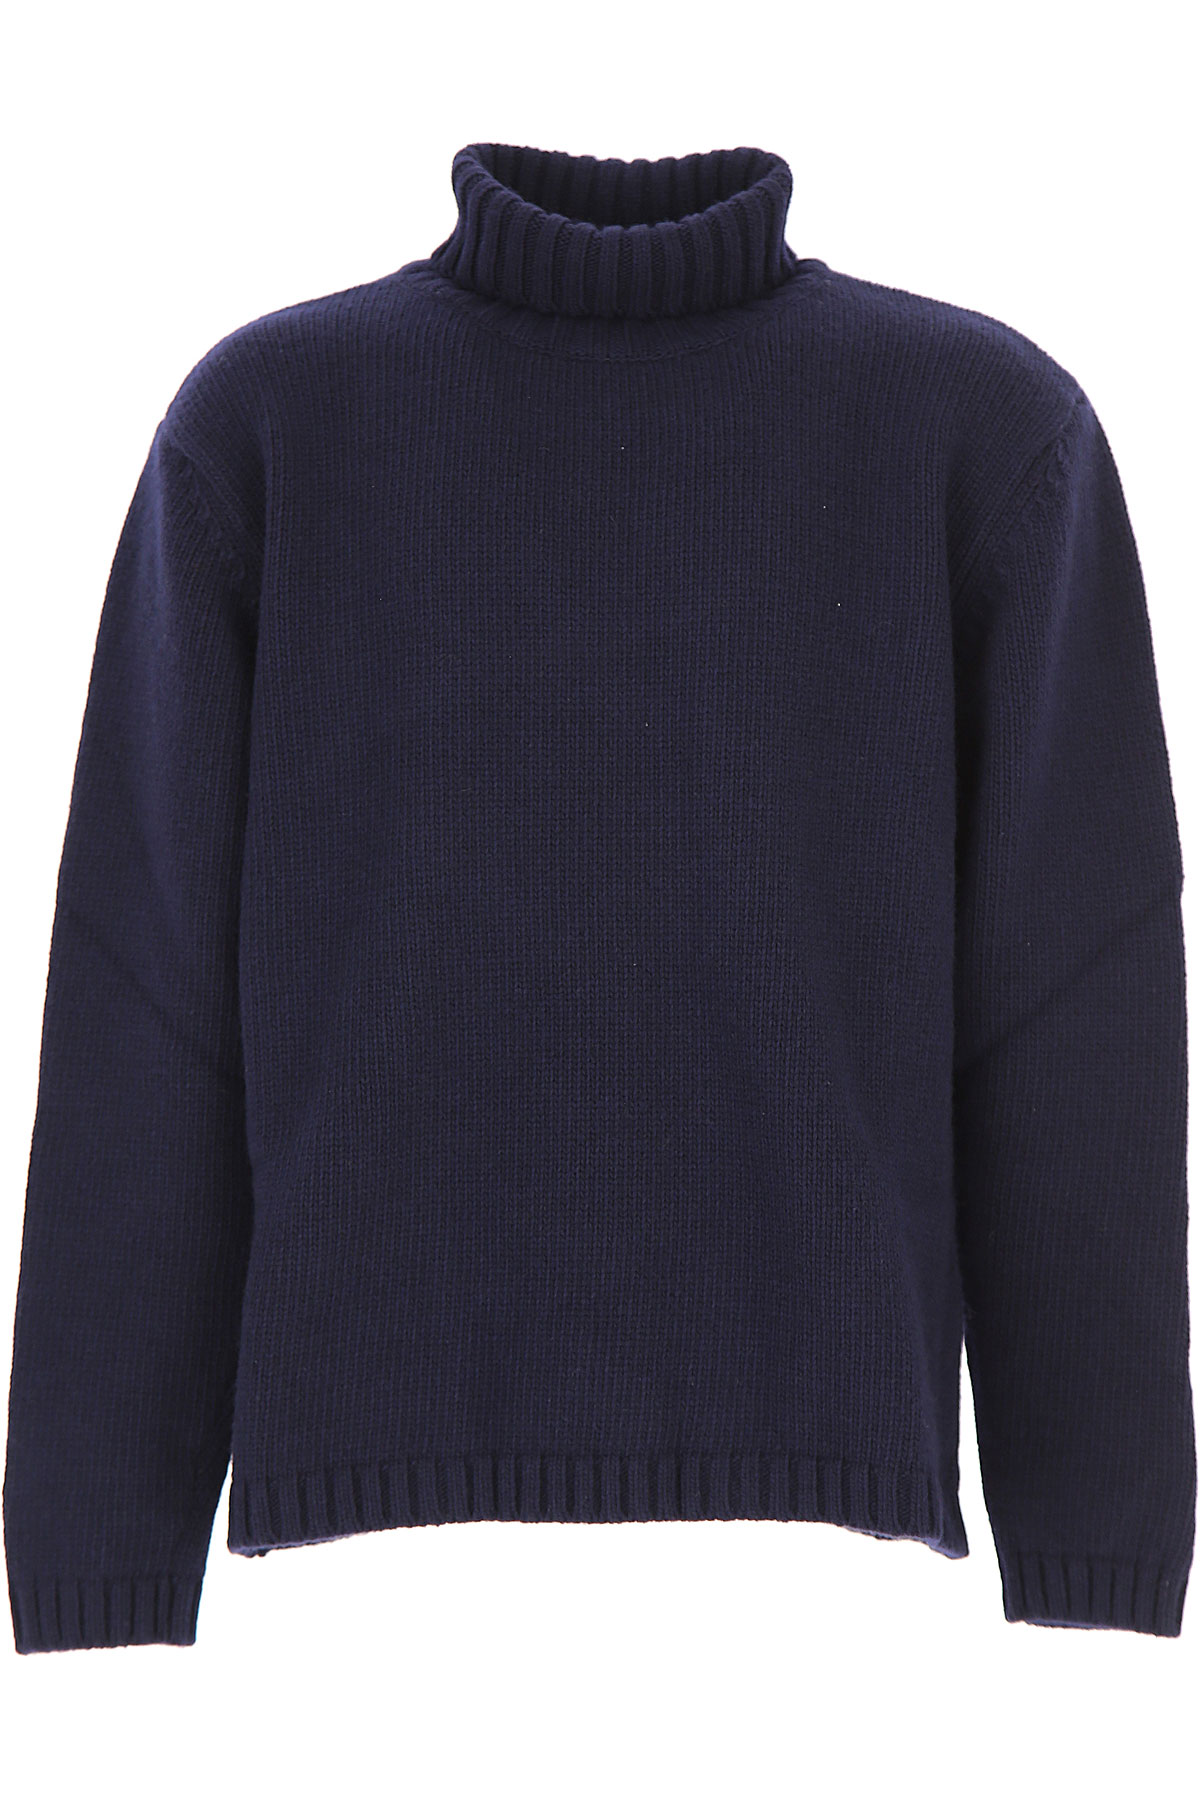 Image of Douuod Kids Sweaters for Girls, Blue, Viscose, 2017, 10Y 14Y 8Y